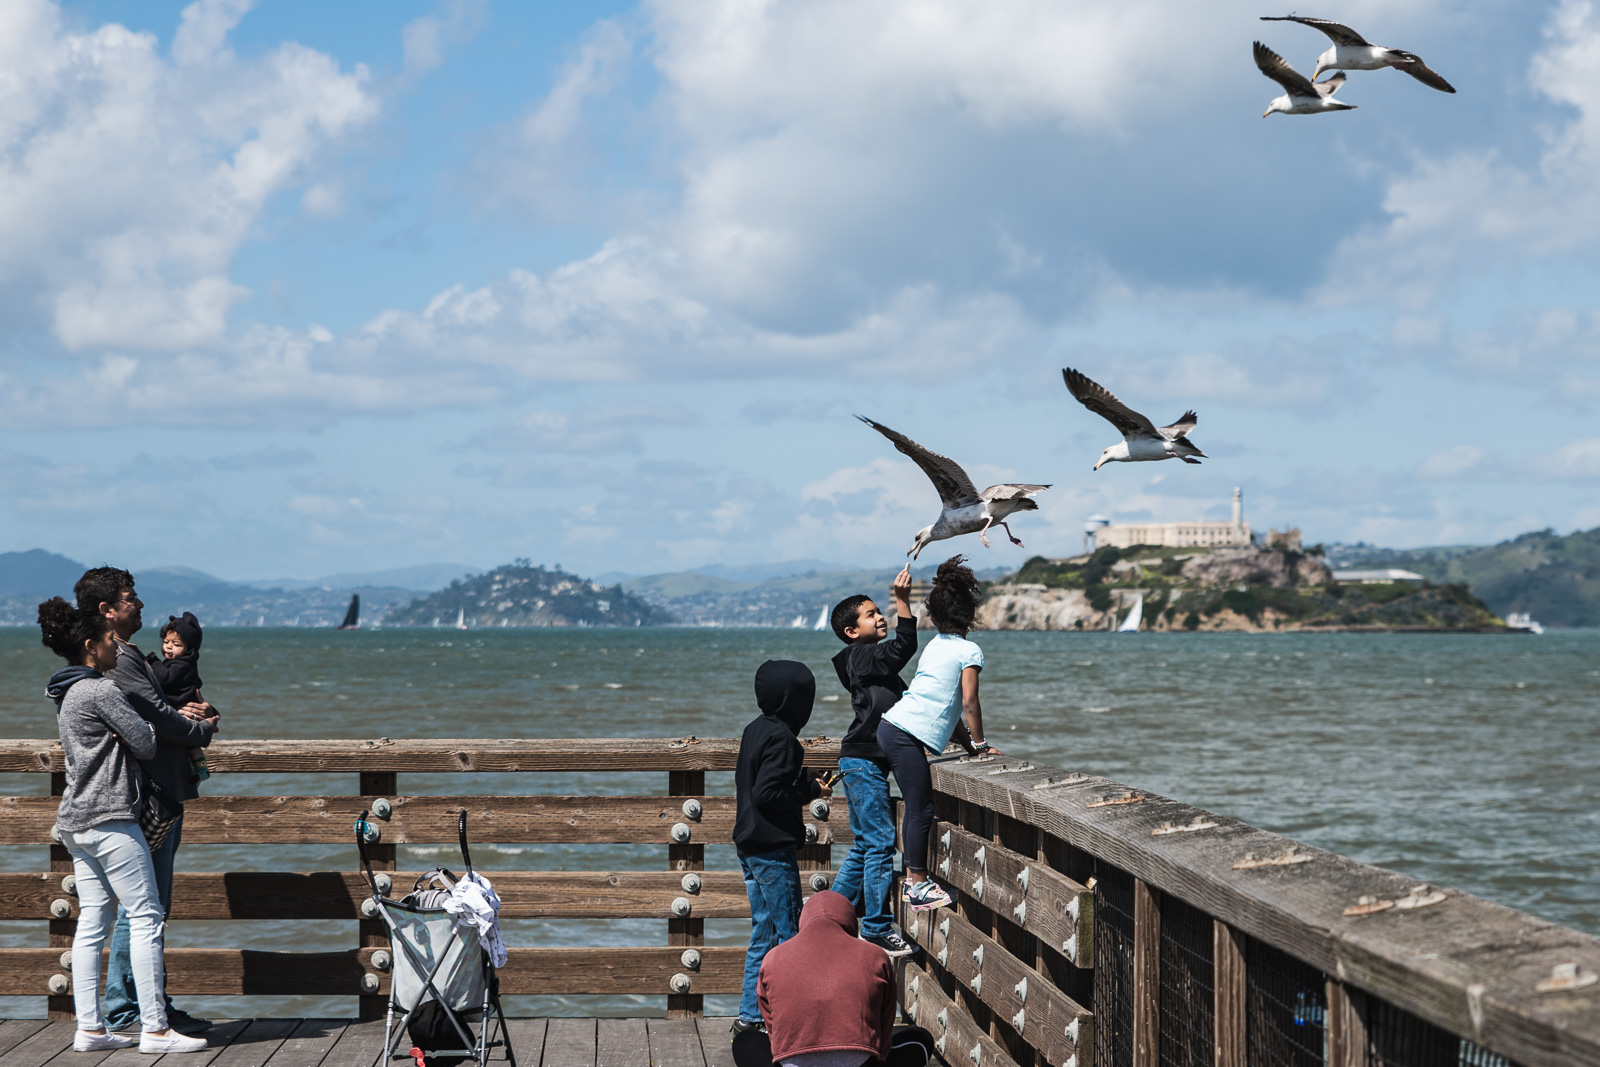 A boy feeds seagulls at fishermans wharf with Alcatraz in the background in San Francisco, CA